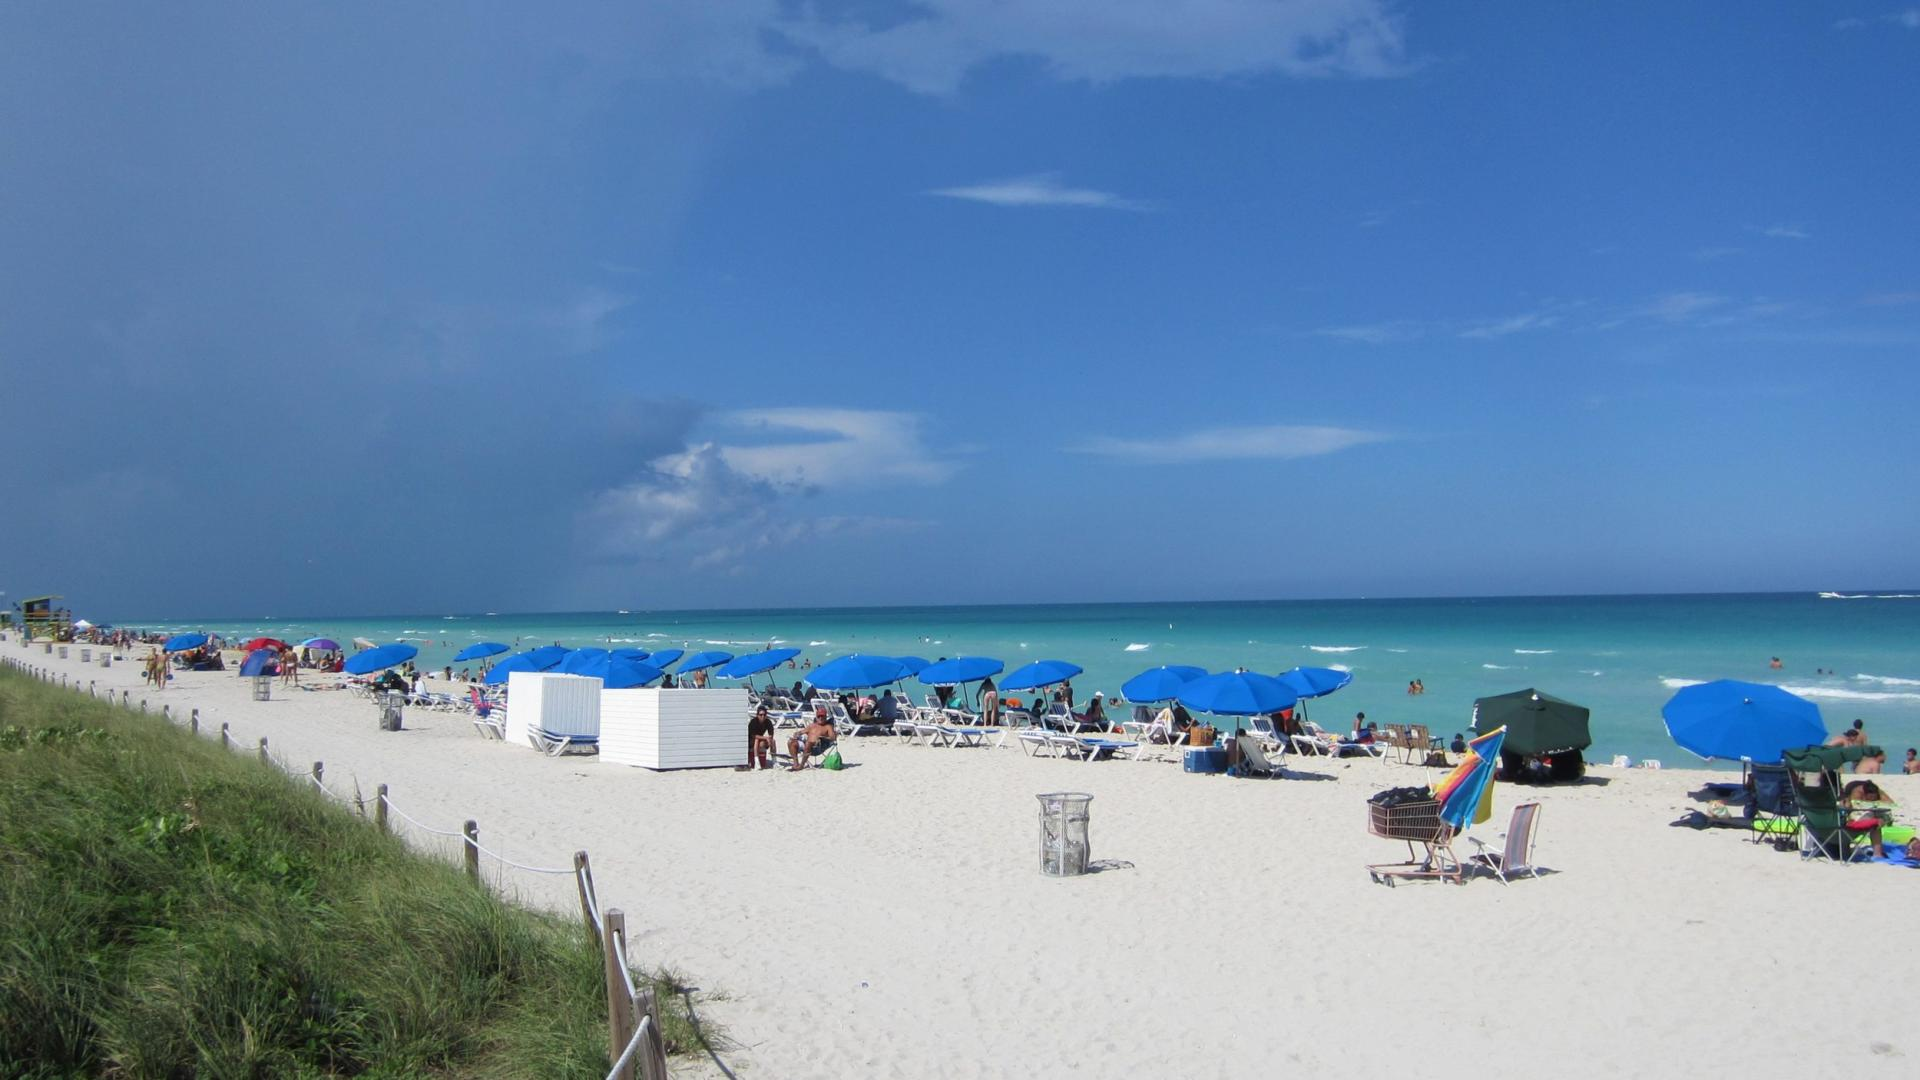 South Beach Miami Florida Hd Wallpaper South Beach Miami Florida 1920x1080